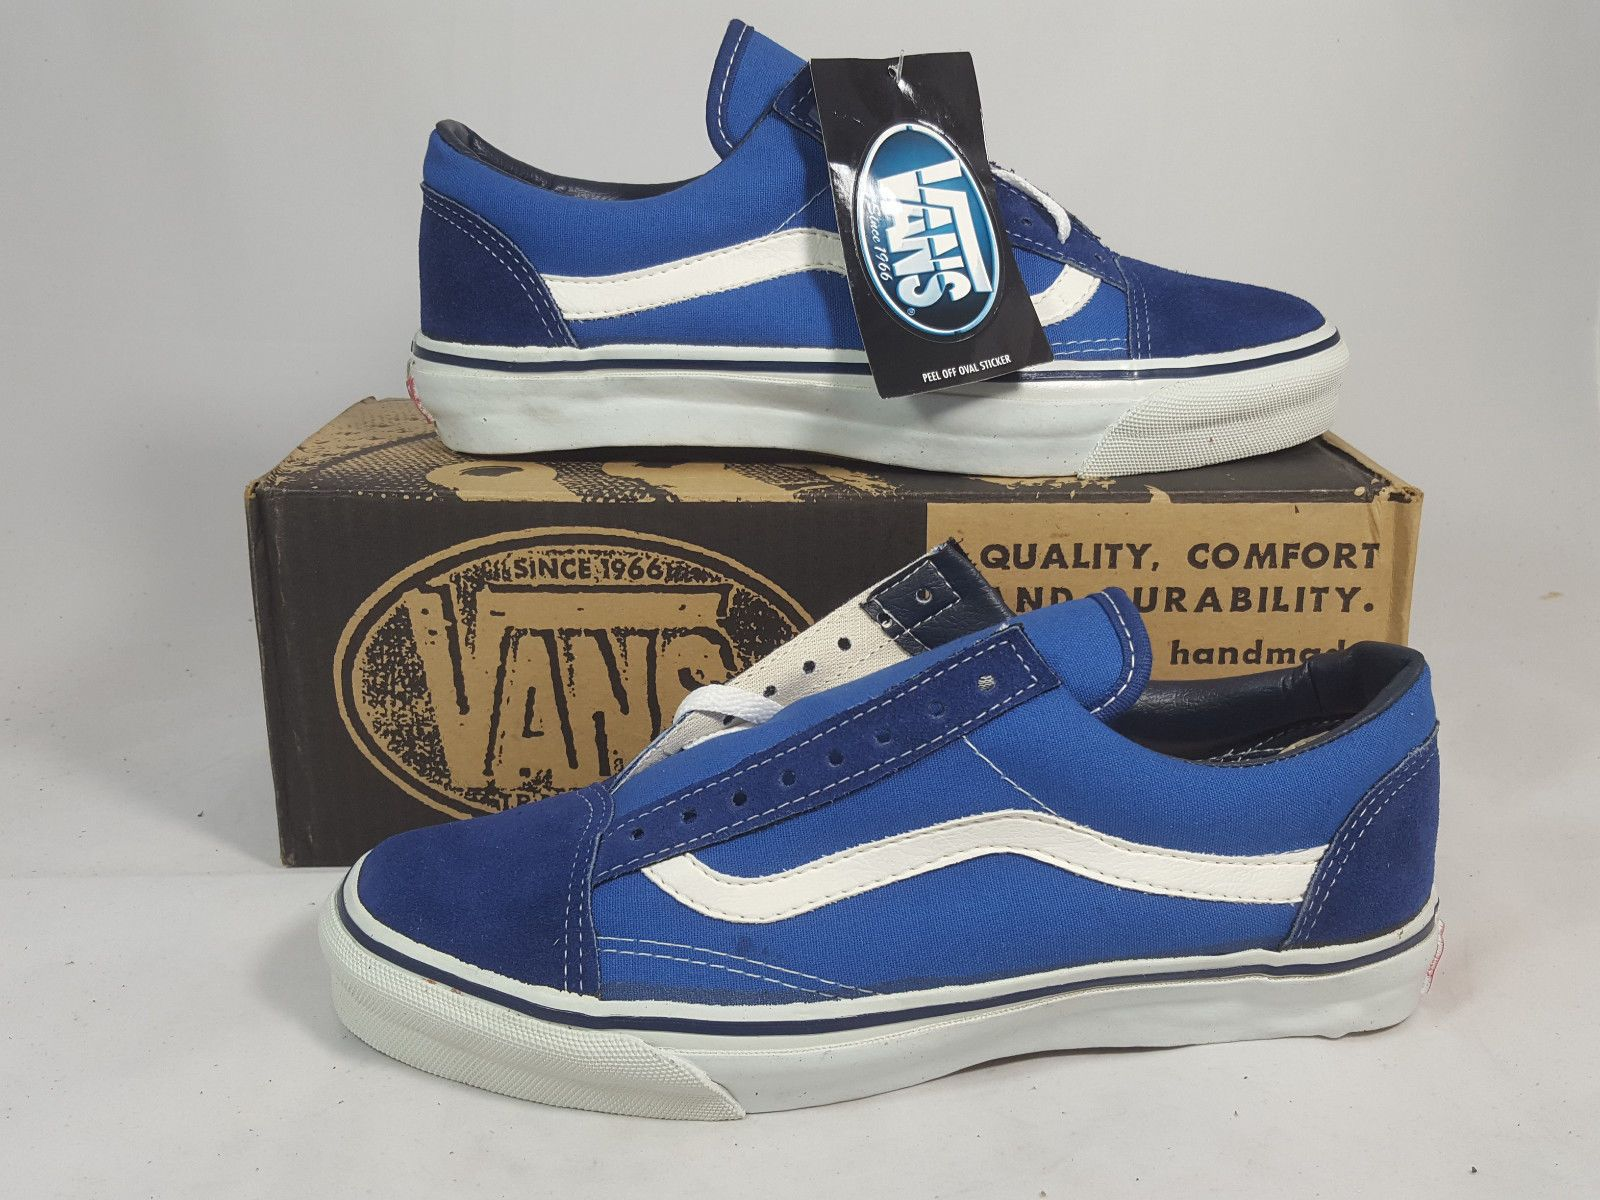 76ccc11ec2 Details about Vintage Vans OLD SKOOL shoes STEEL BLUE SK8 HI made in ...